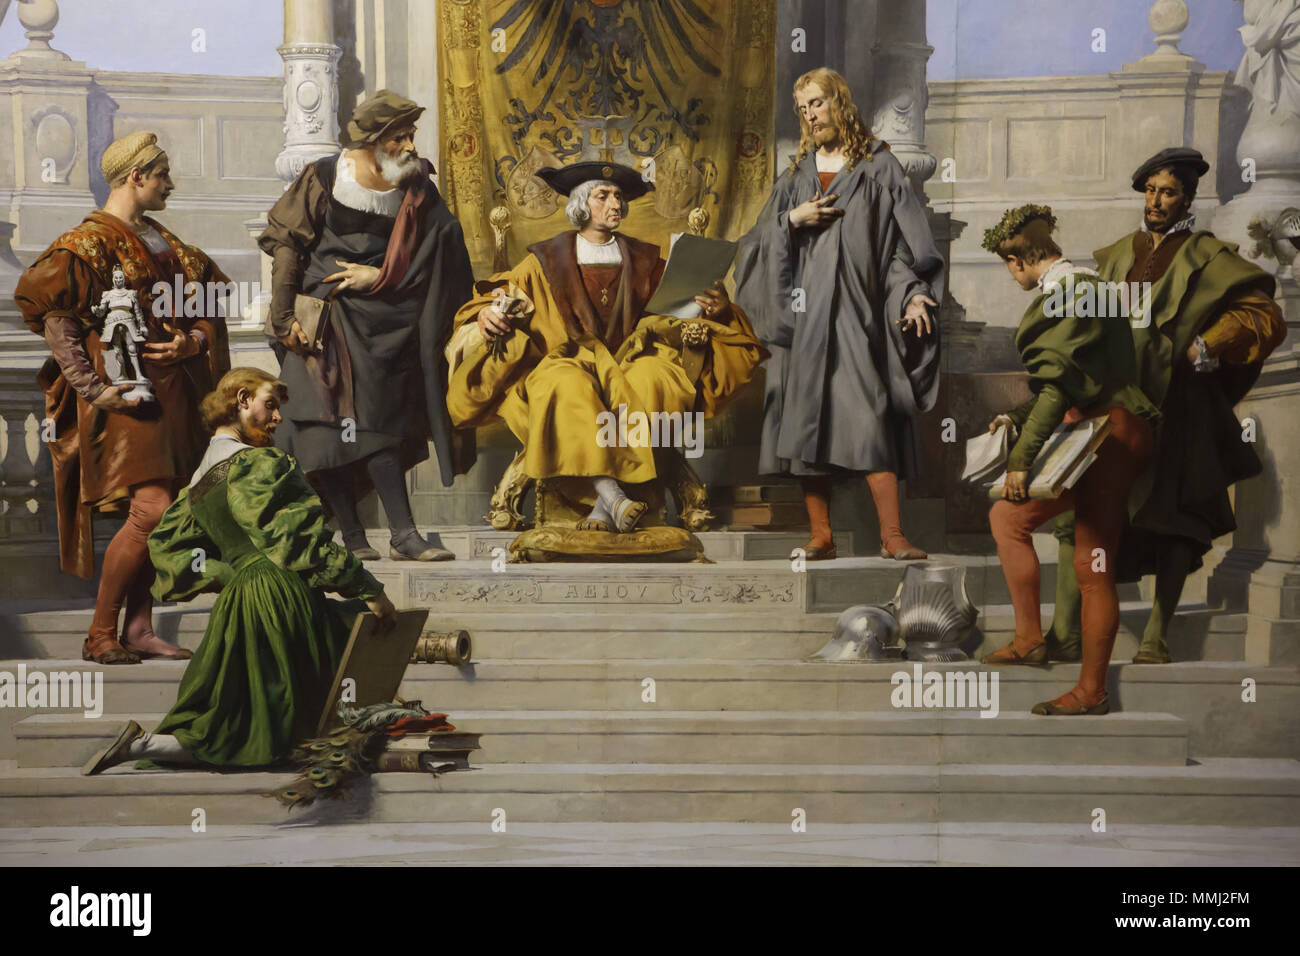 Albrecht Dürer and Holy Roman Emperor Maximilian I. Detail of the ceiling painting 'Patronage of the Arts by the House of Habsburg' by Austrian painter Julius Victor Berger in the Hall XIX of the Kunsthistorisches Museum (Museum of Art History) in Vienna, Austria. - Stock Image